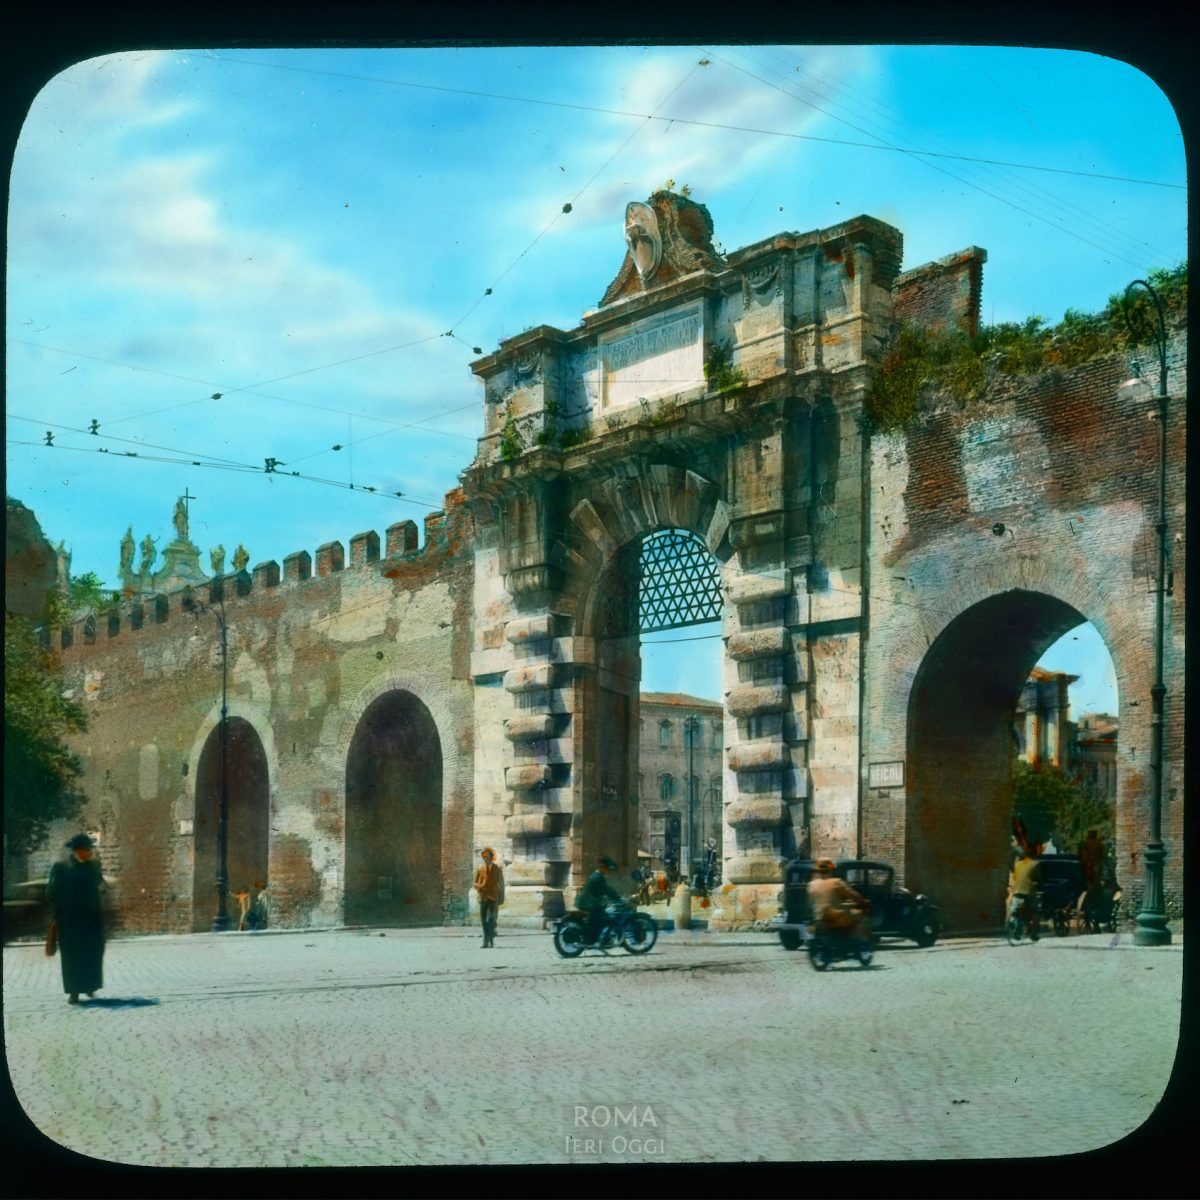 Rome. Porta San Giovanni, in the Aurelian Wall View in tinted lantern slide, ca. 1919-1938. The wall dates from the 3rd century, the gate from 1574.